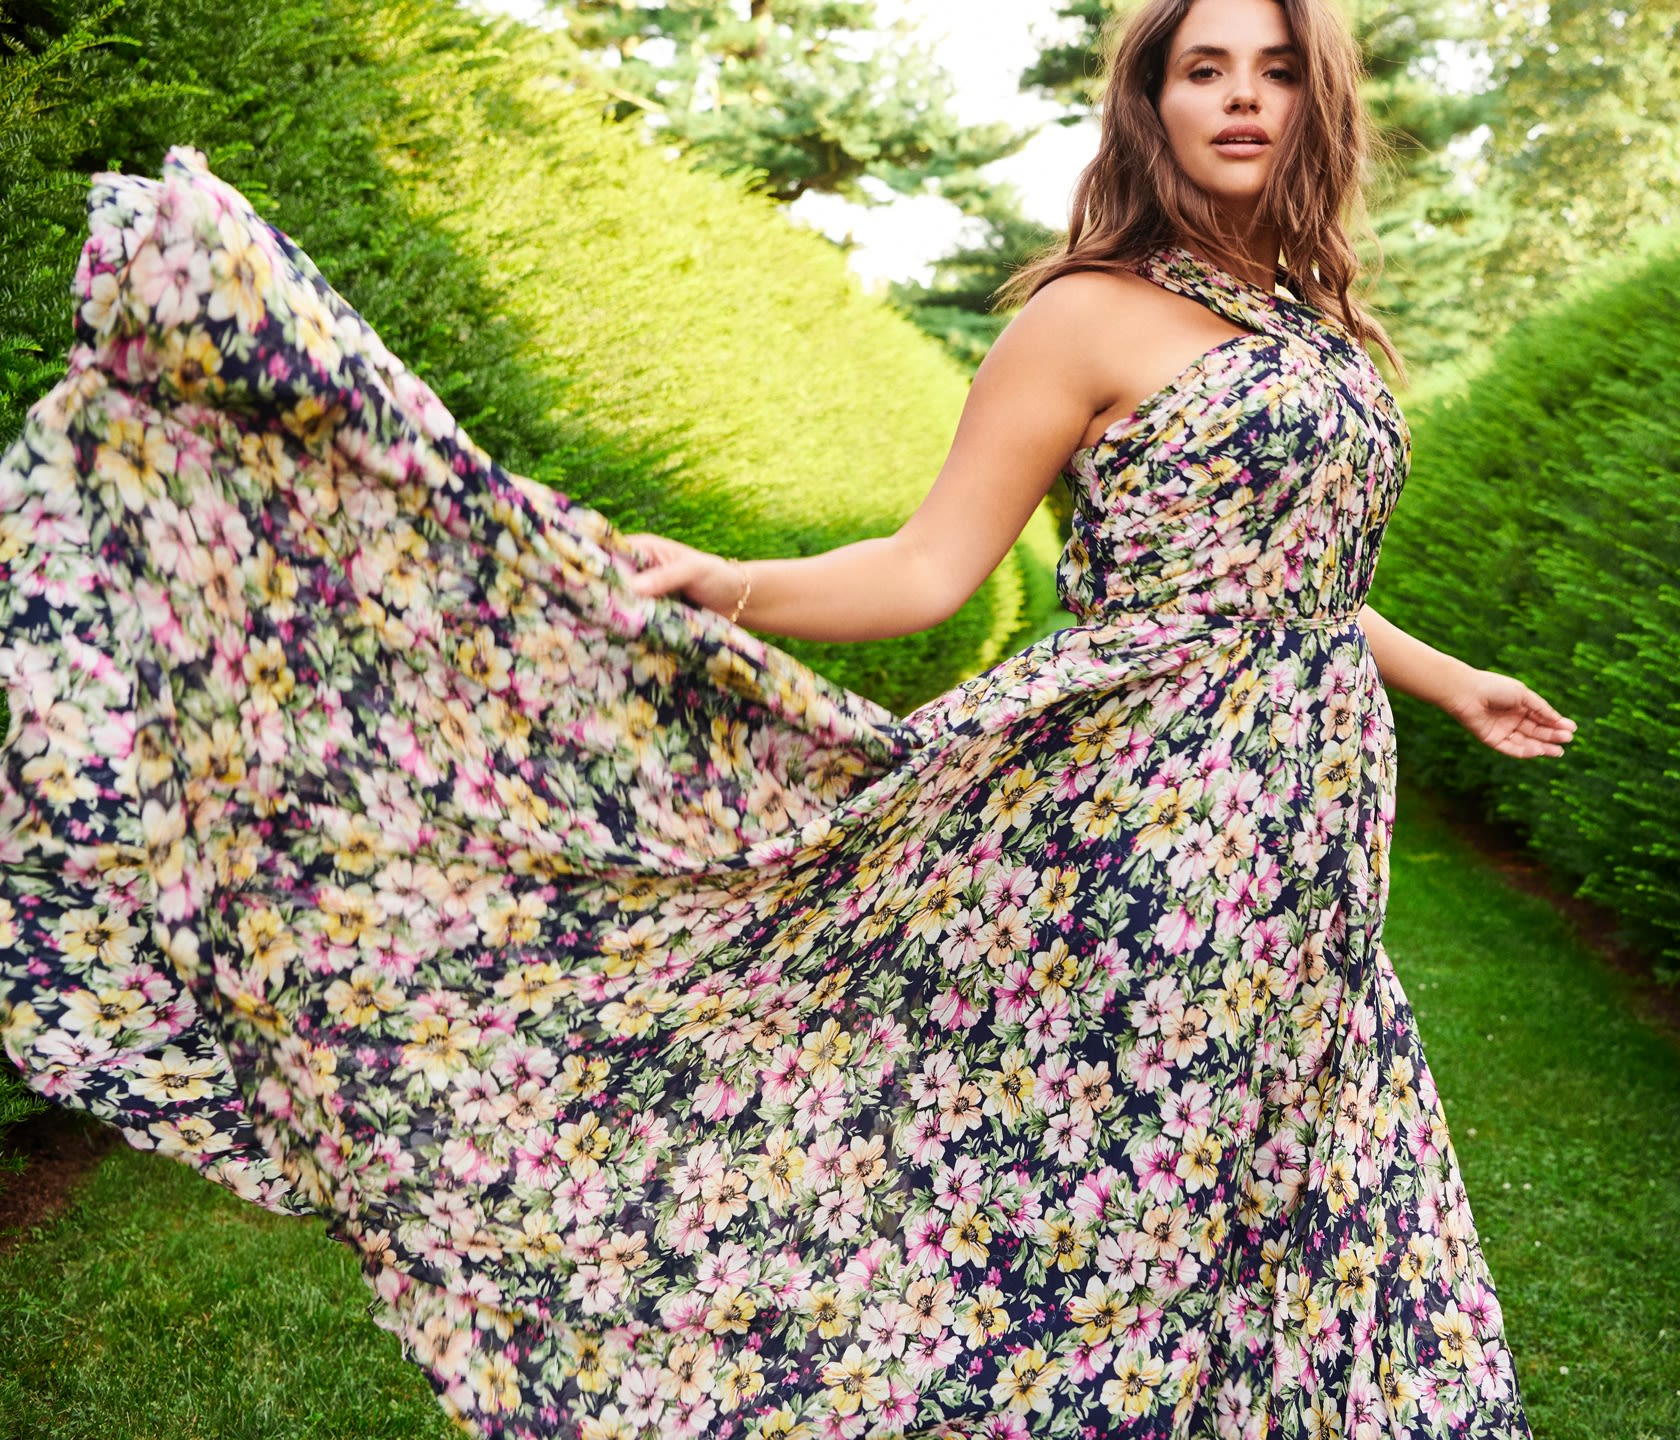 Model with a floral, colorful, and windswept dress walking through a graden.